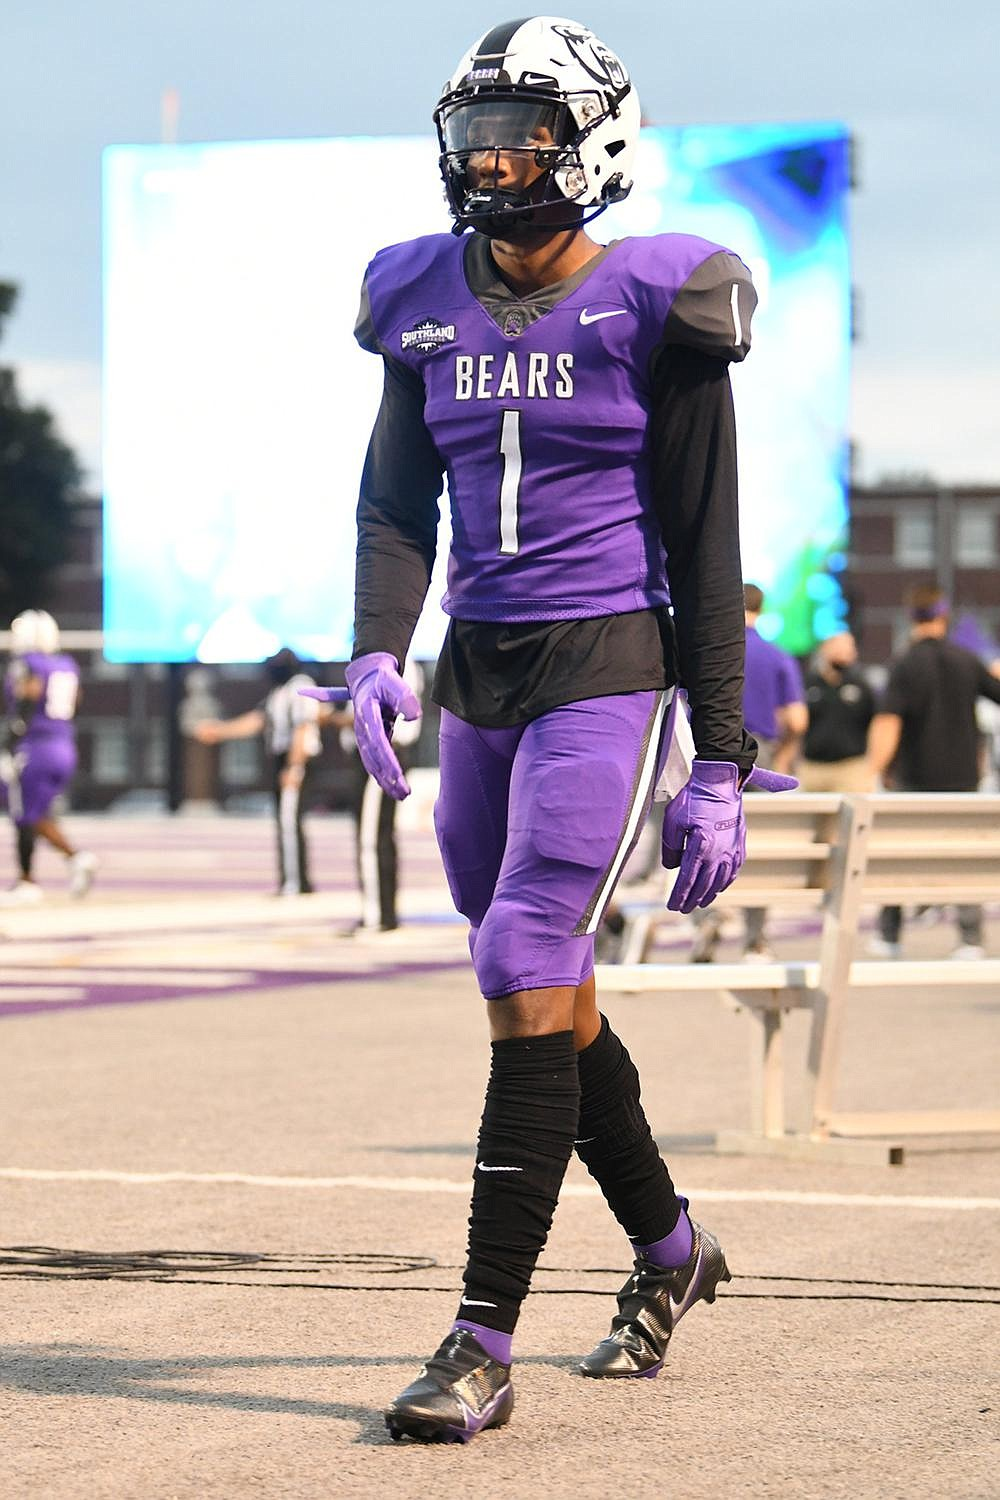 Tyler Hudson, a sophomore from Spring, Texas, has 15 catches for 225 yards and 2 touchdowns this season for the UCA Bears.